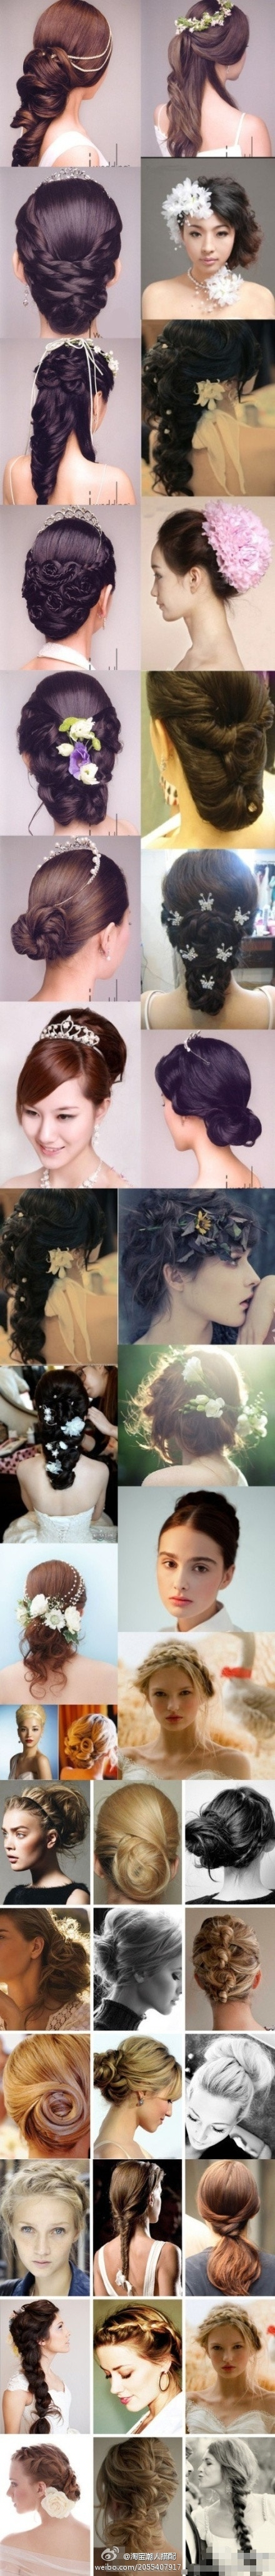 Romantic hair styles| every hair style you could need